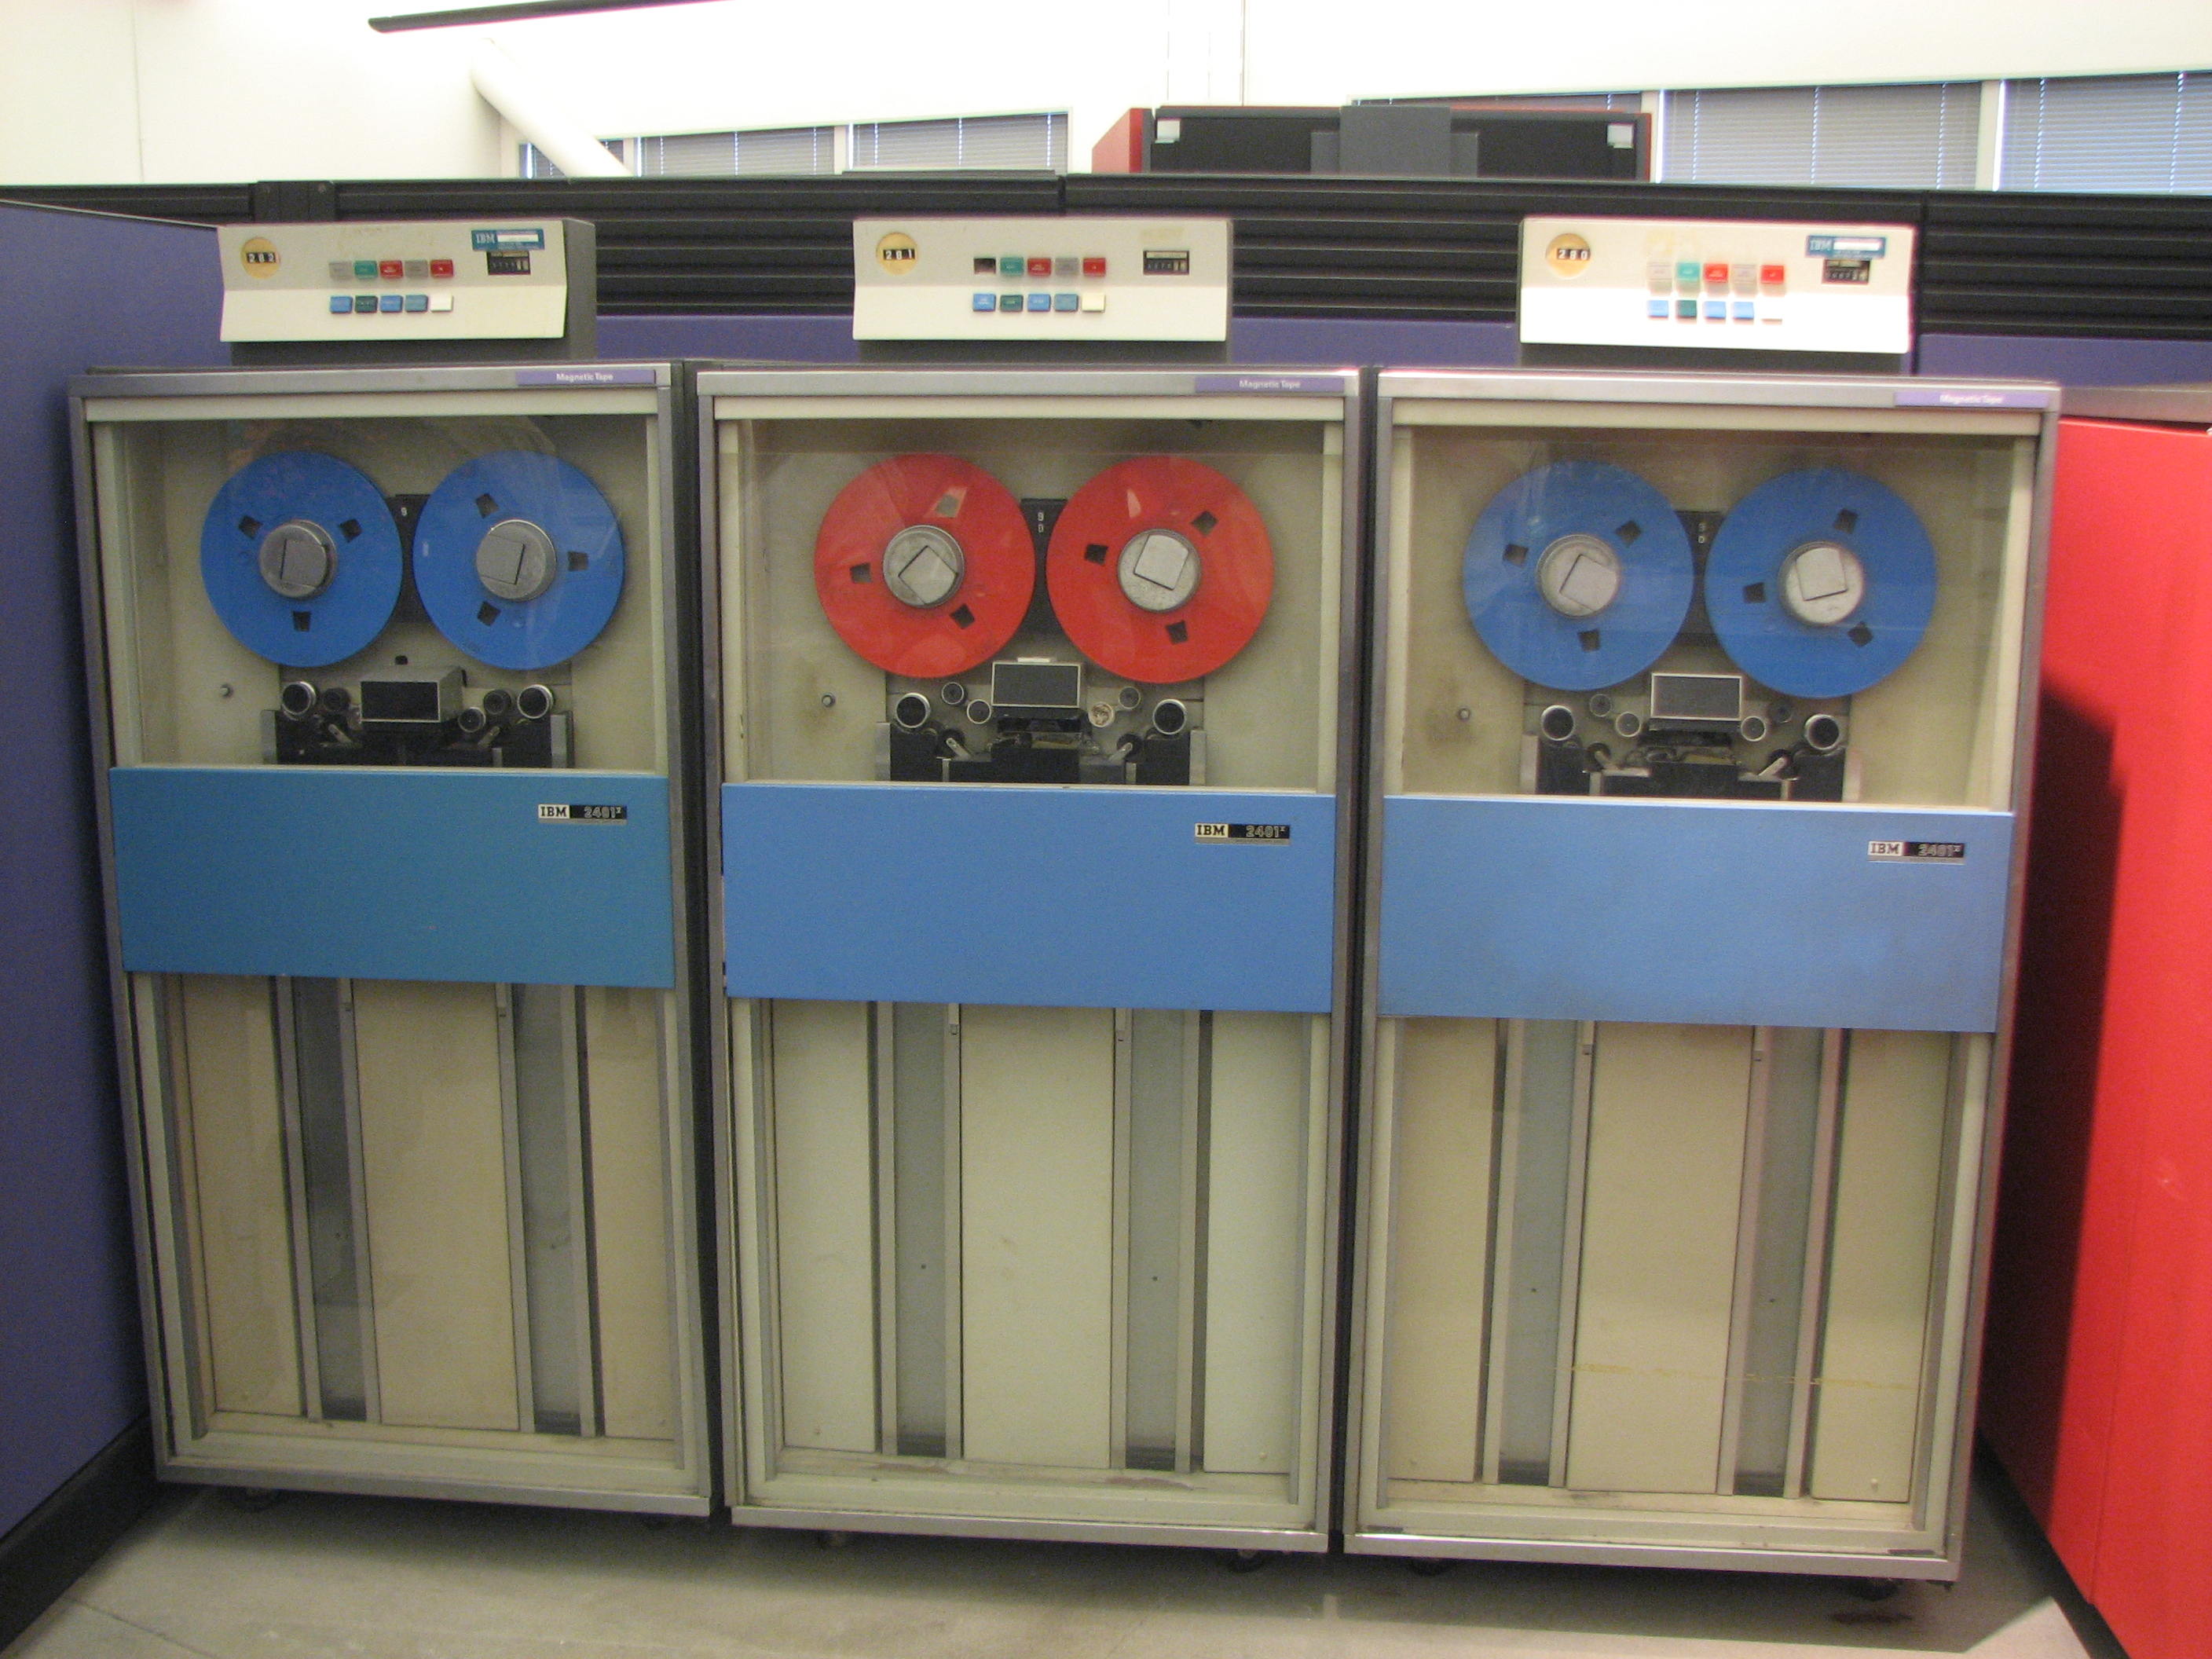 IBM 2401 tape drives